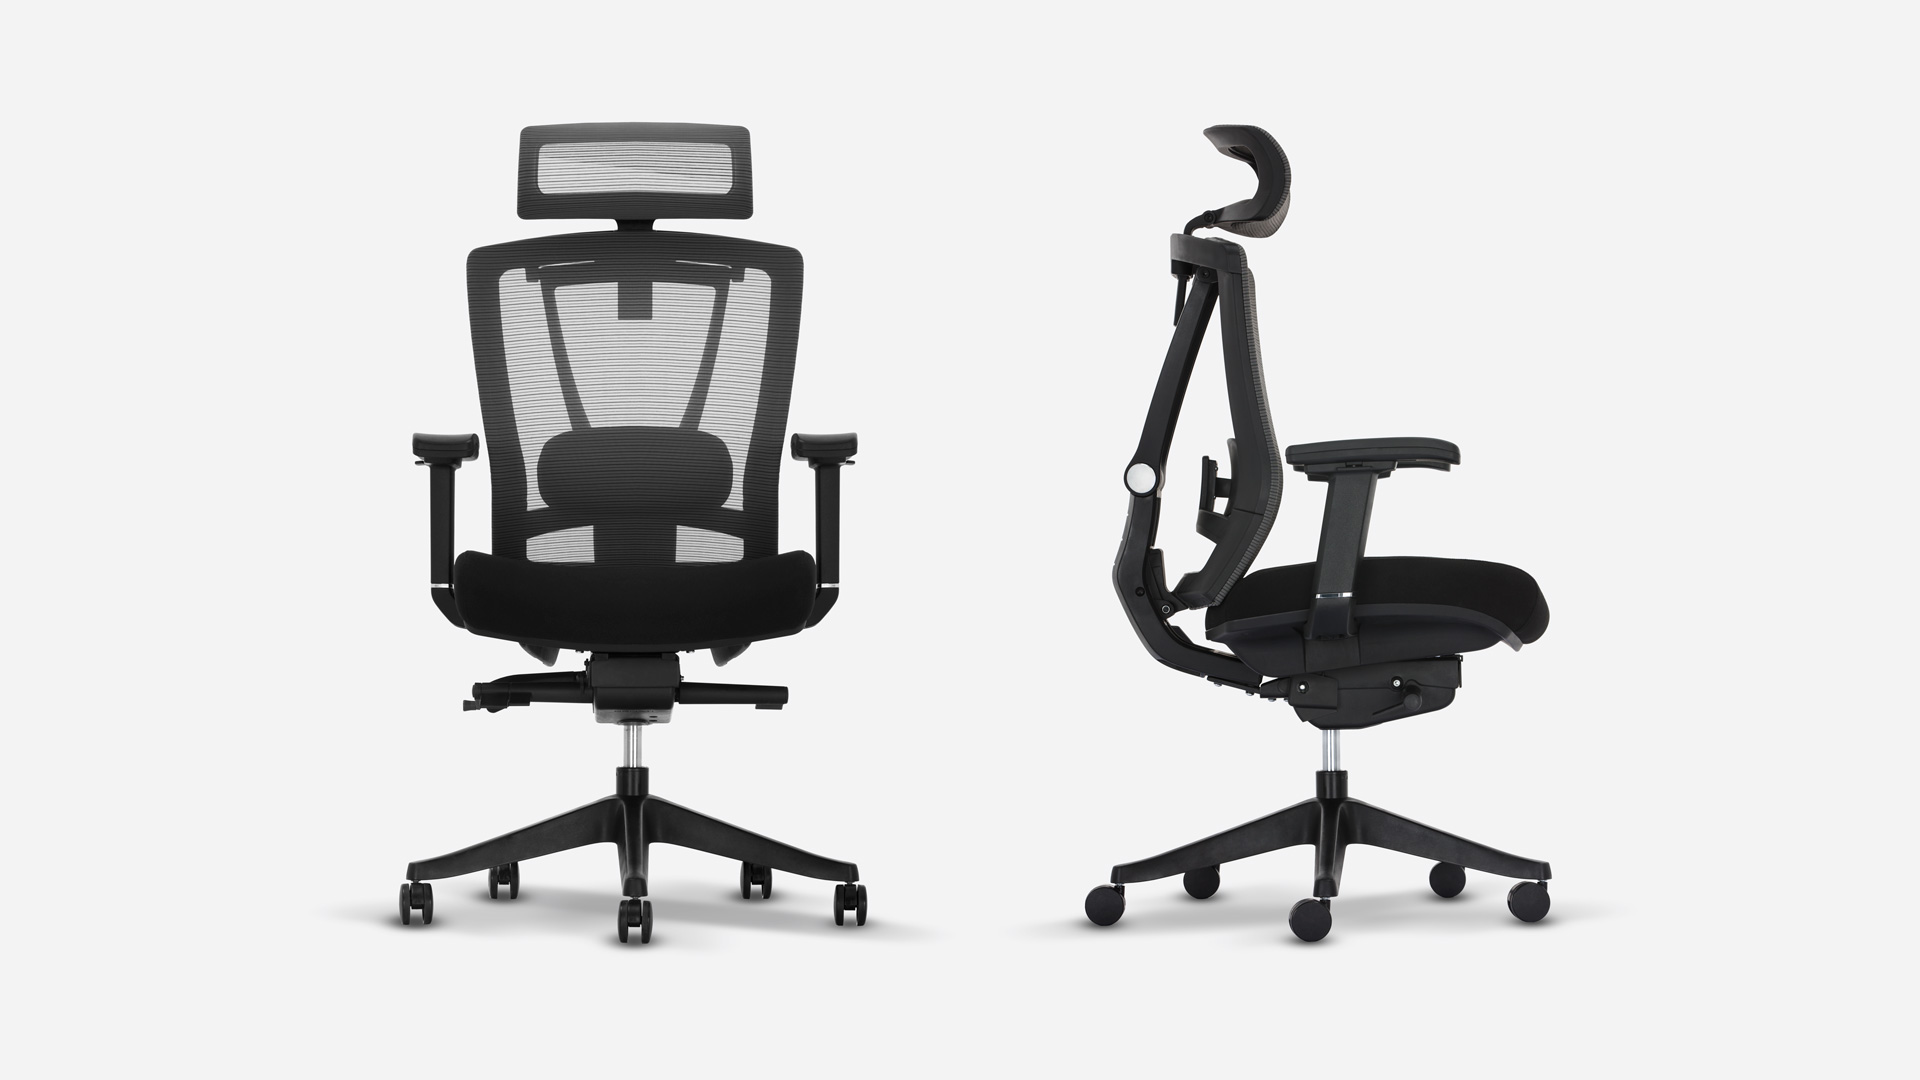 is the erochair worth the 269 price tag in my opinion no itu0027s a little too middle of the road for me and i feel you could spend a bit more to